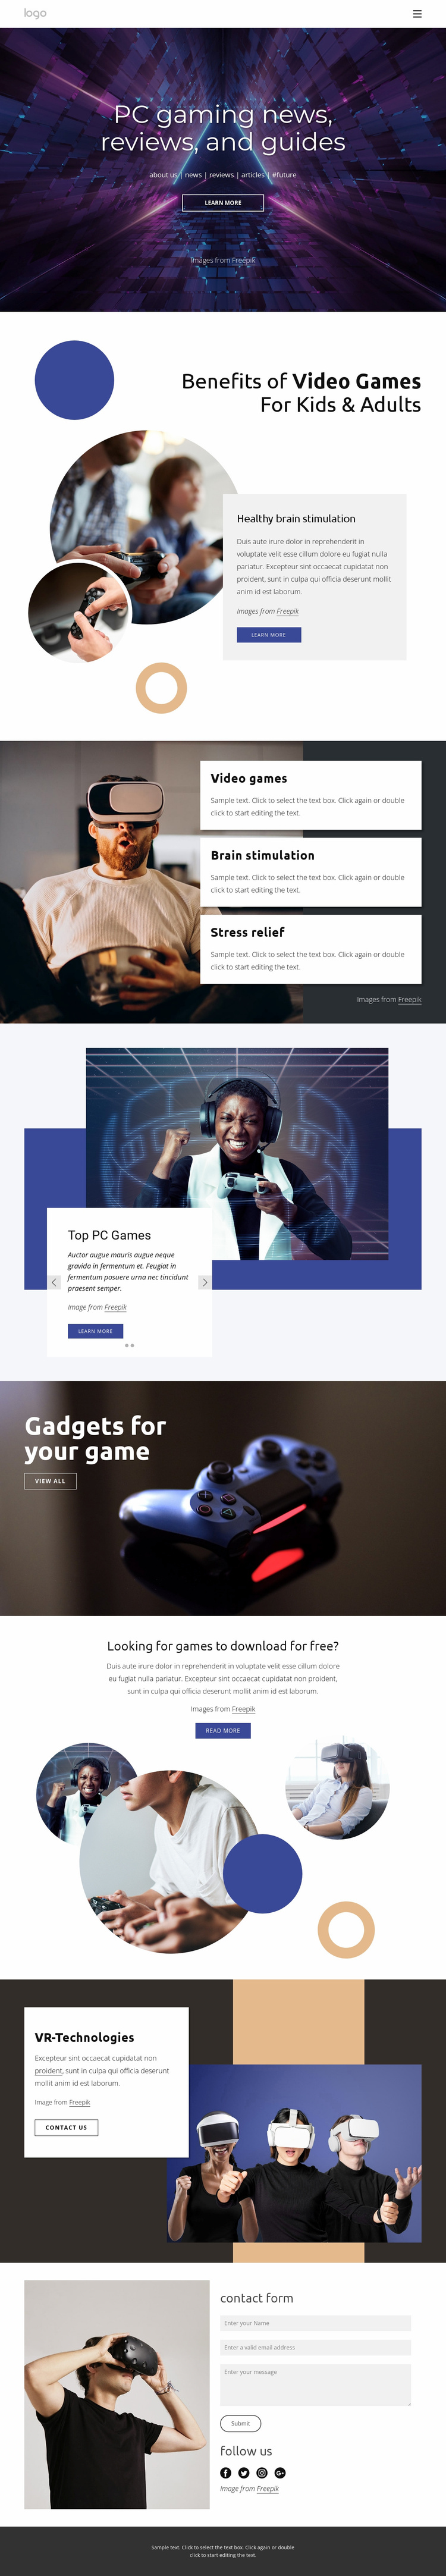 PC gaming news Website Template